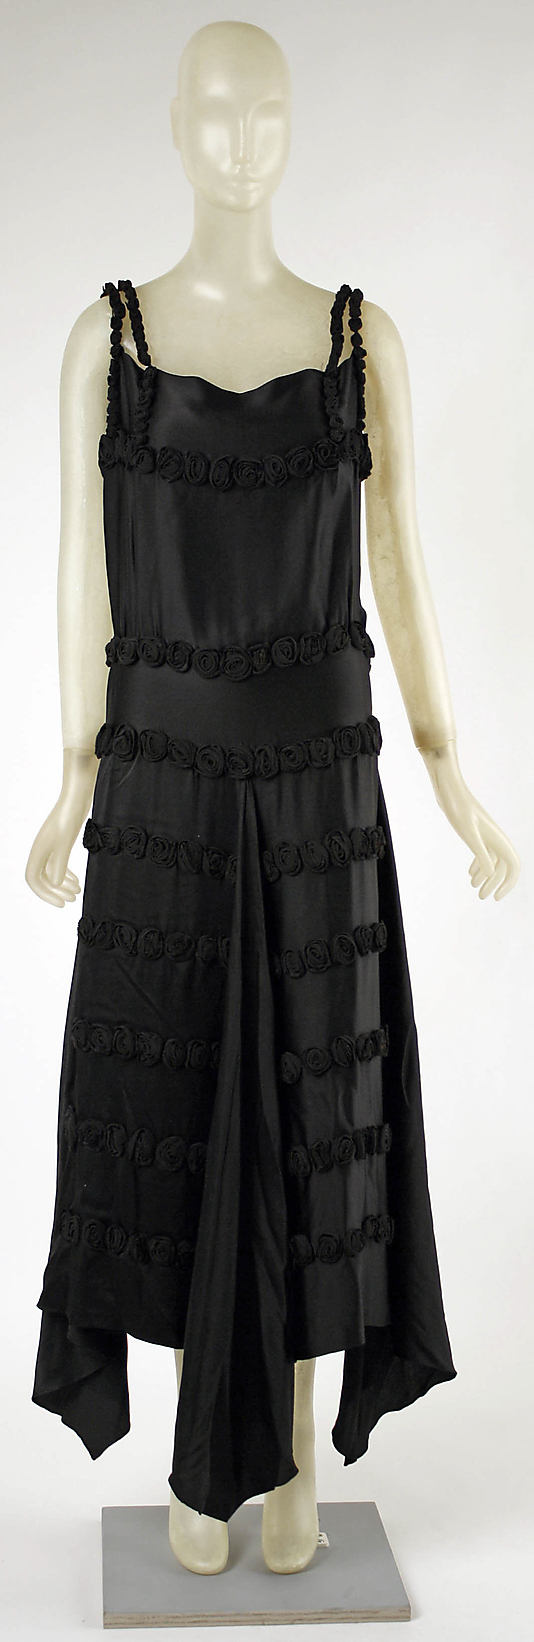 Evening dress Madeleine Vionnet  Date: fall/winter 1921–22 Culture: French Medium: silk Accession Number: C.I.52.18.1